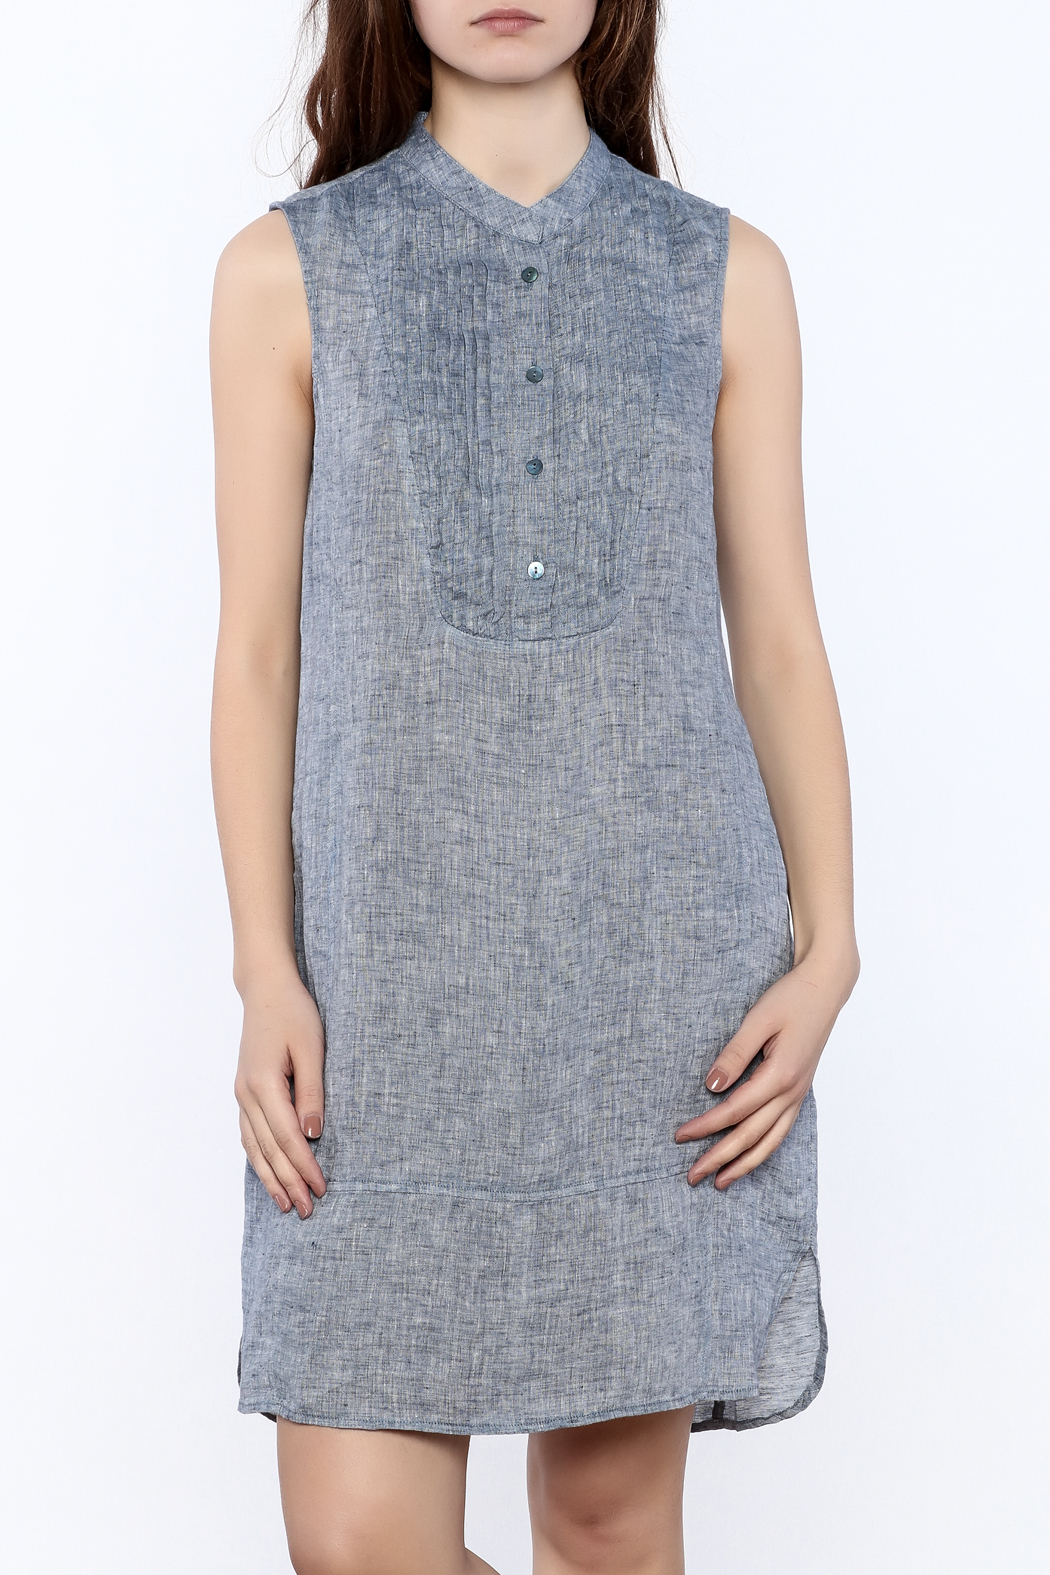 Nic + Zoe Sleeveless Linen Dress - Main Image